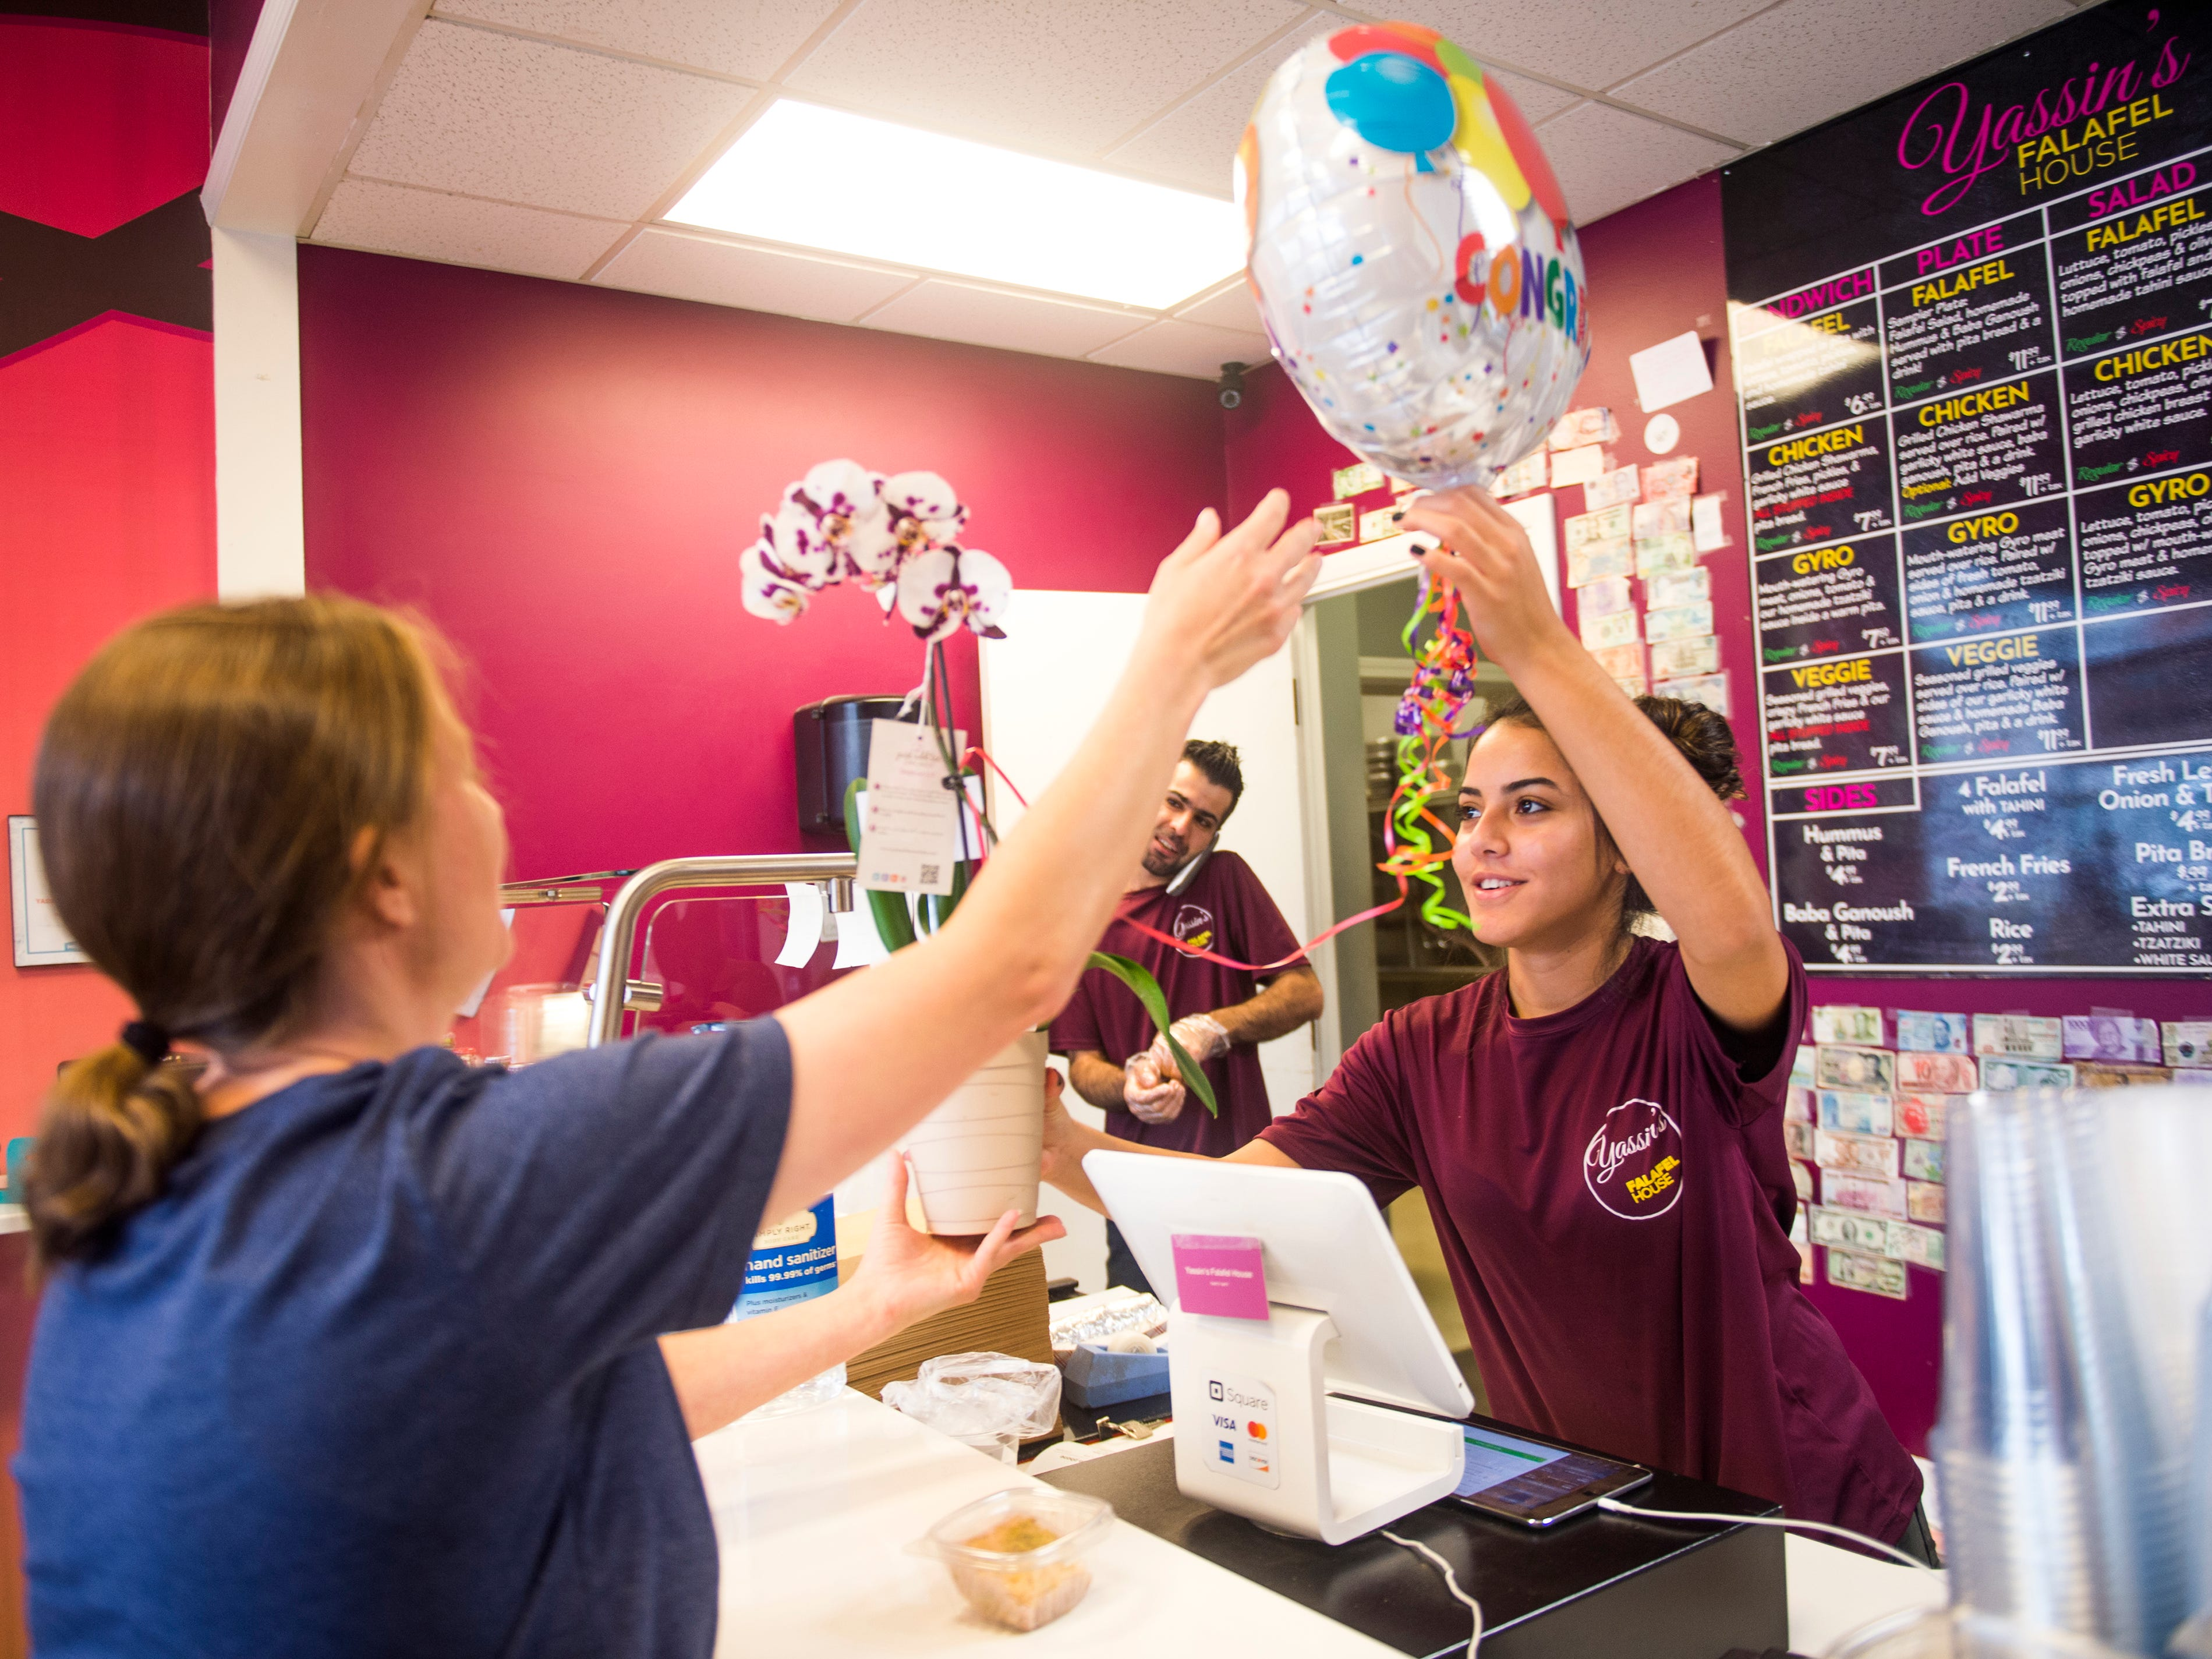 """Jessica Earl, left, surprises the staff at Yassin's Falafel House in downtown Knoxville with an orchid plant and a """"Congrats!"""" balloon on Thursday, October 11, 2018. Yassin's Falafel House was named """"Nicest Place in America"""" by Reader's Digest."""